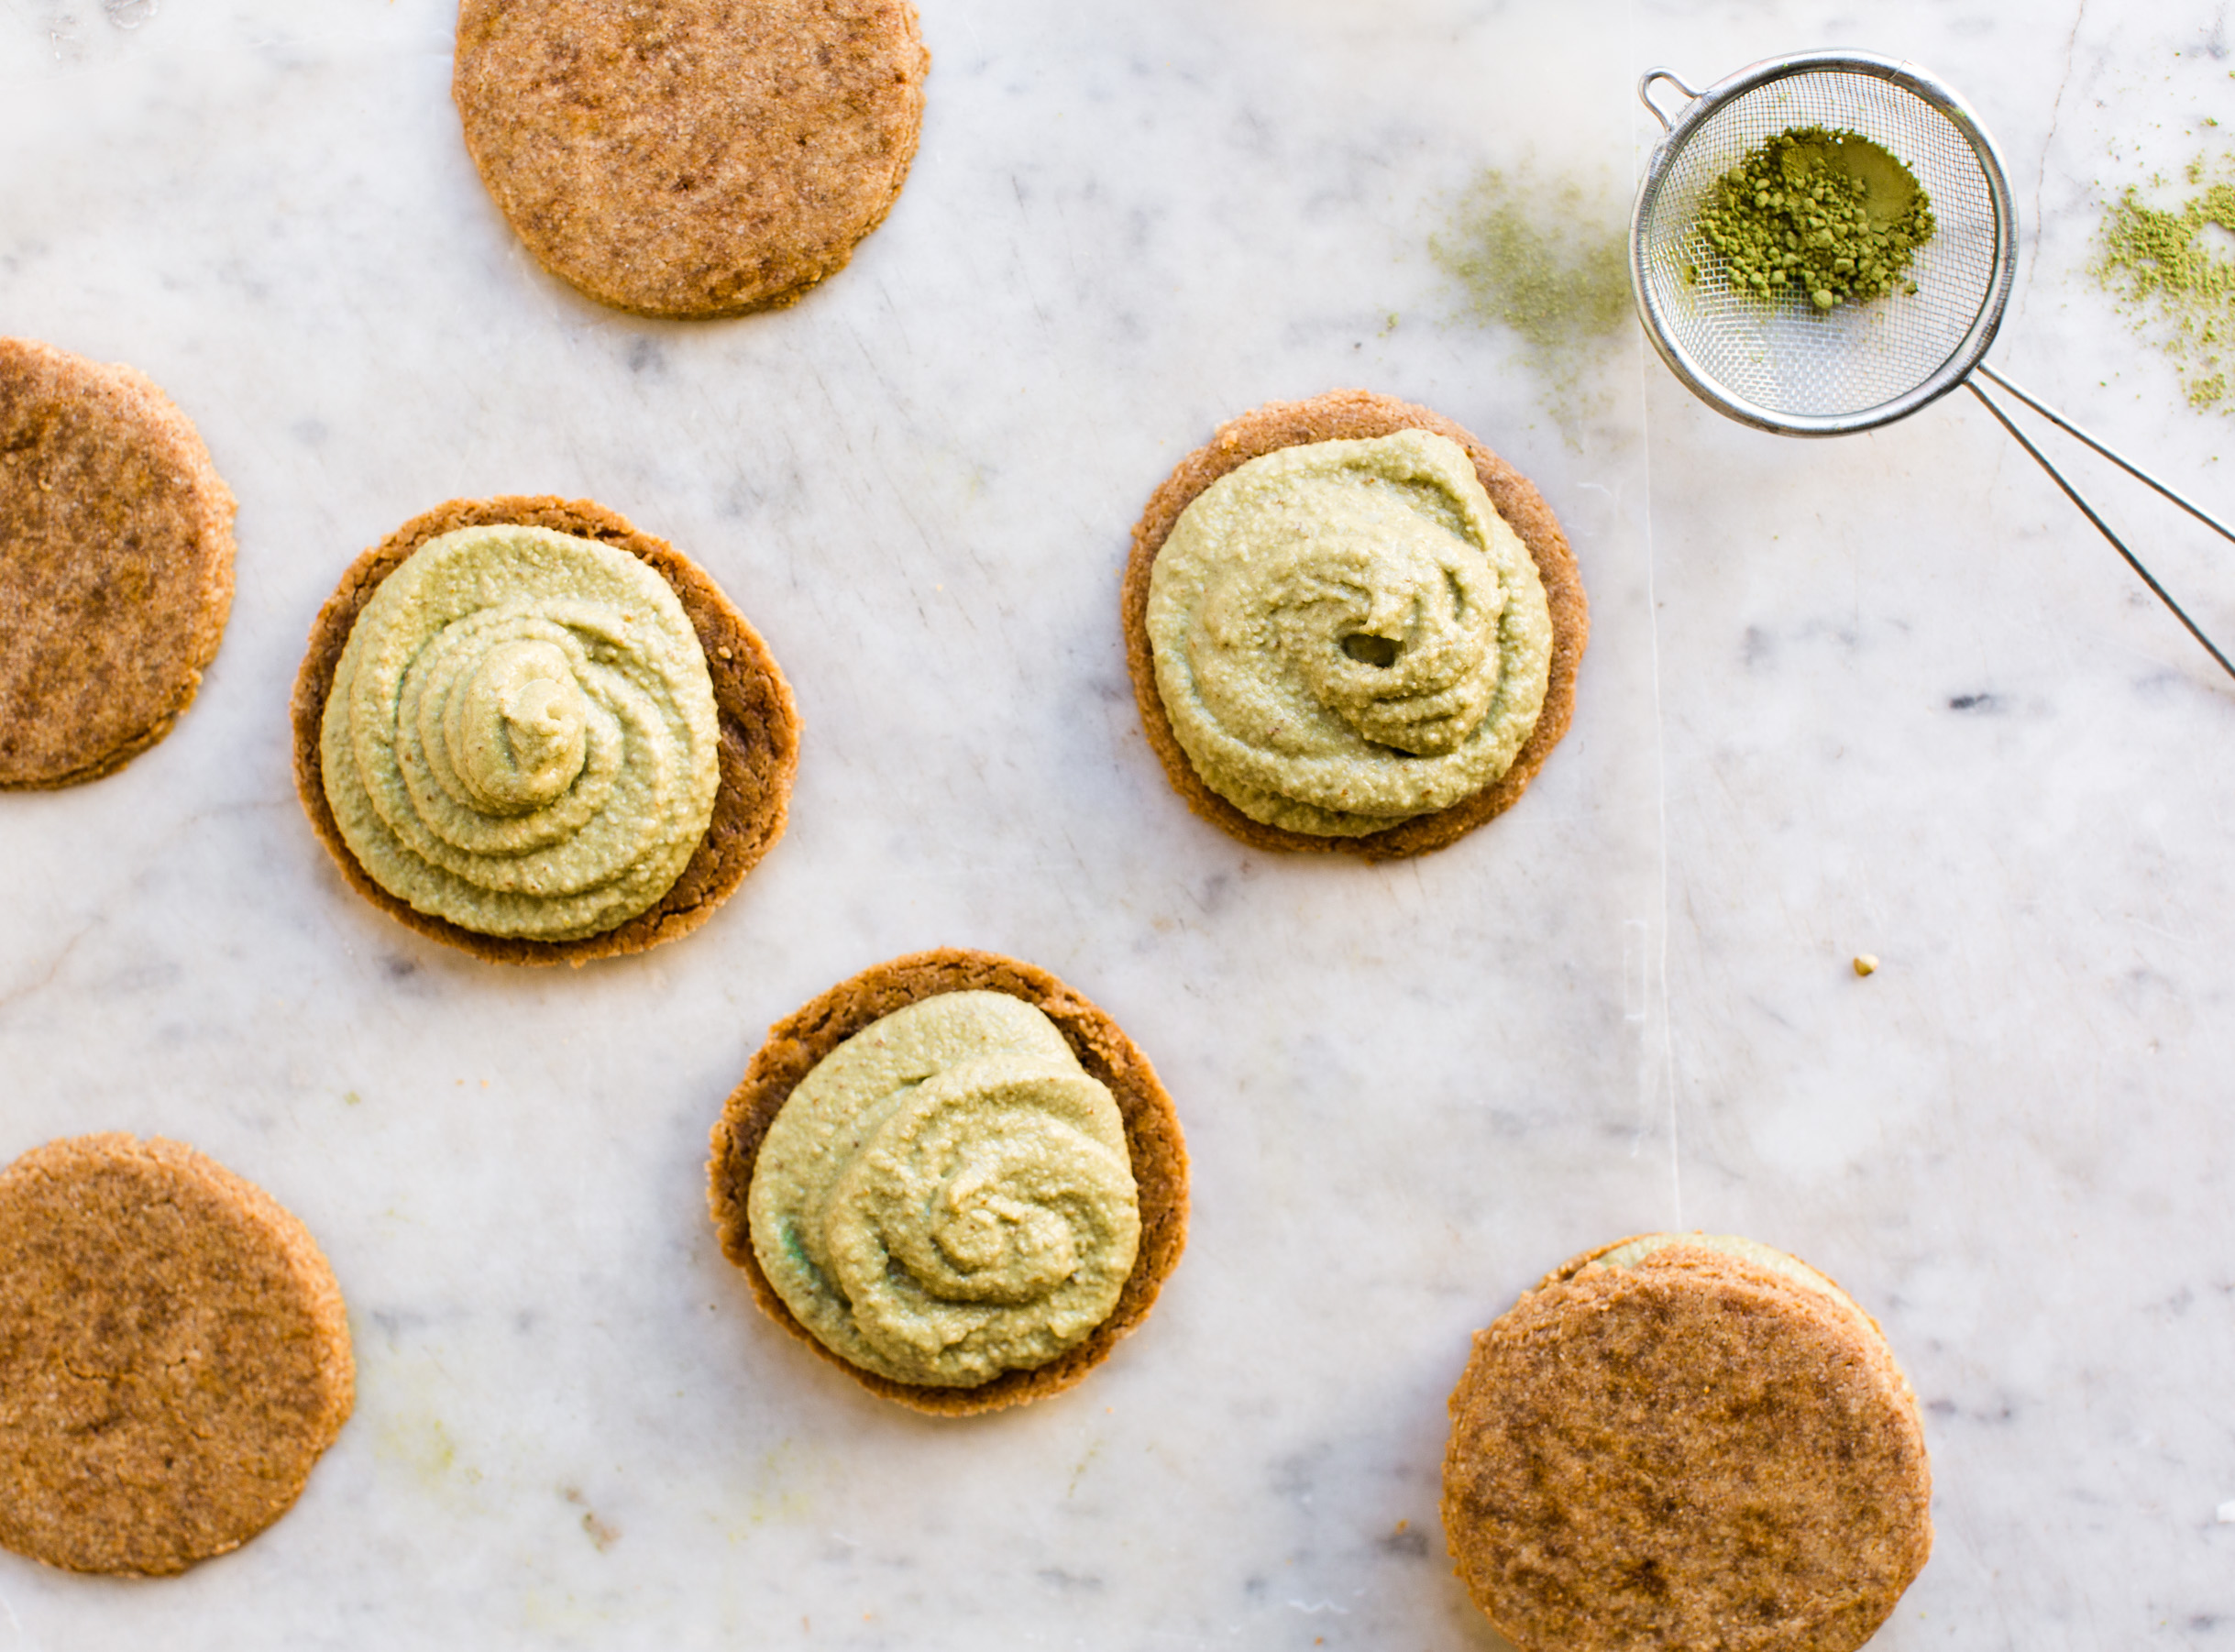 3-Coconut-Sugar-Matcha-Cream-Cookies.jpg